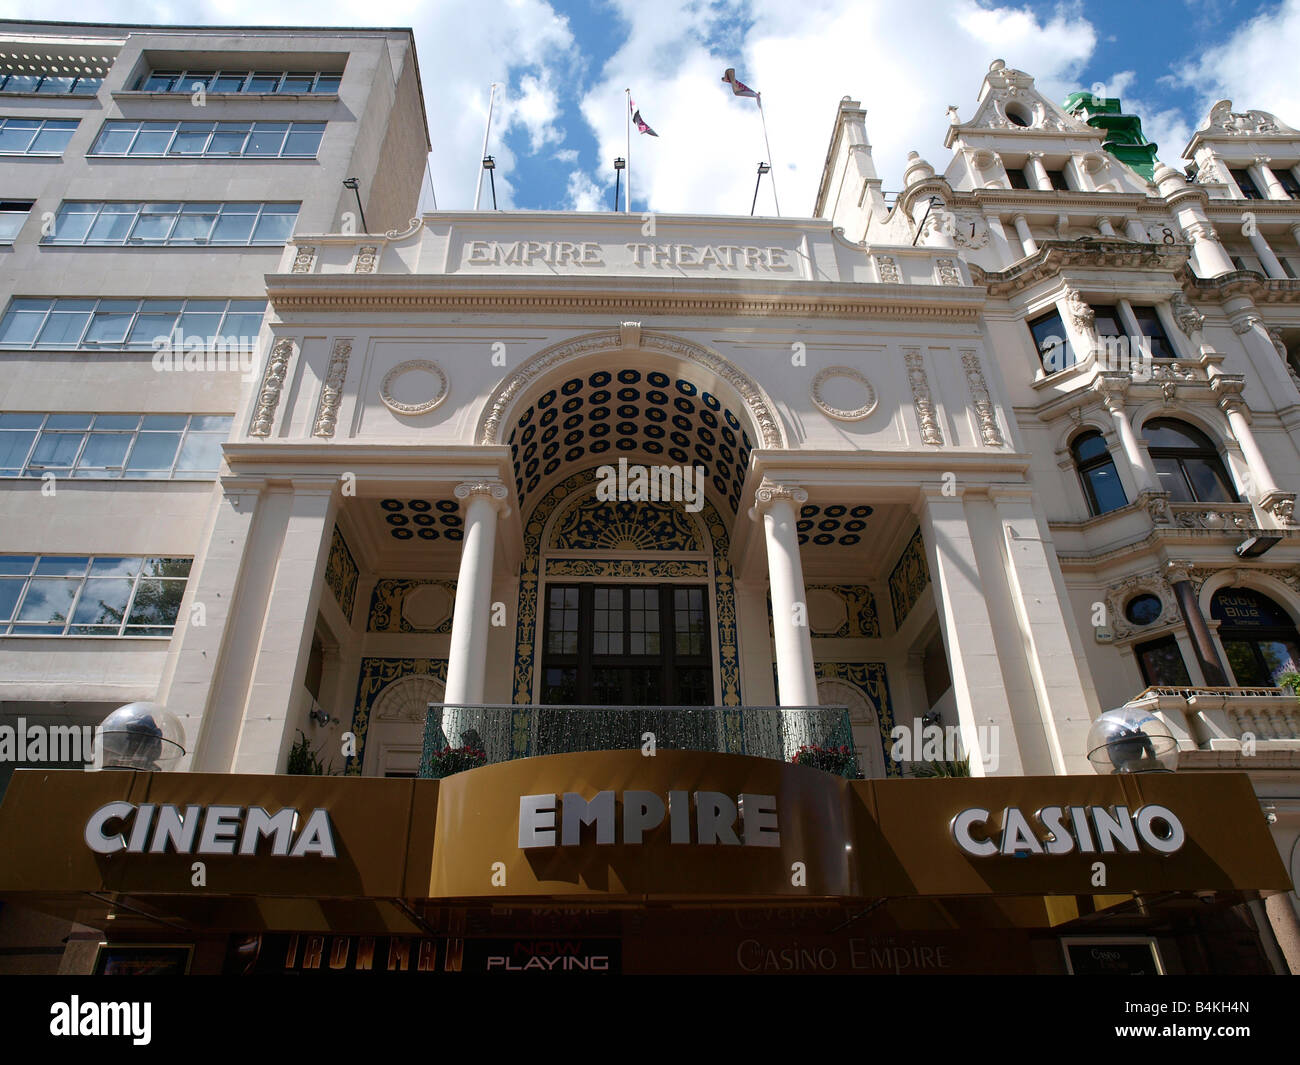 Empire Cinema and Casino Leicester Square London England - Stock Image